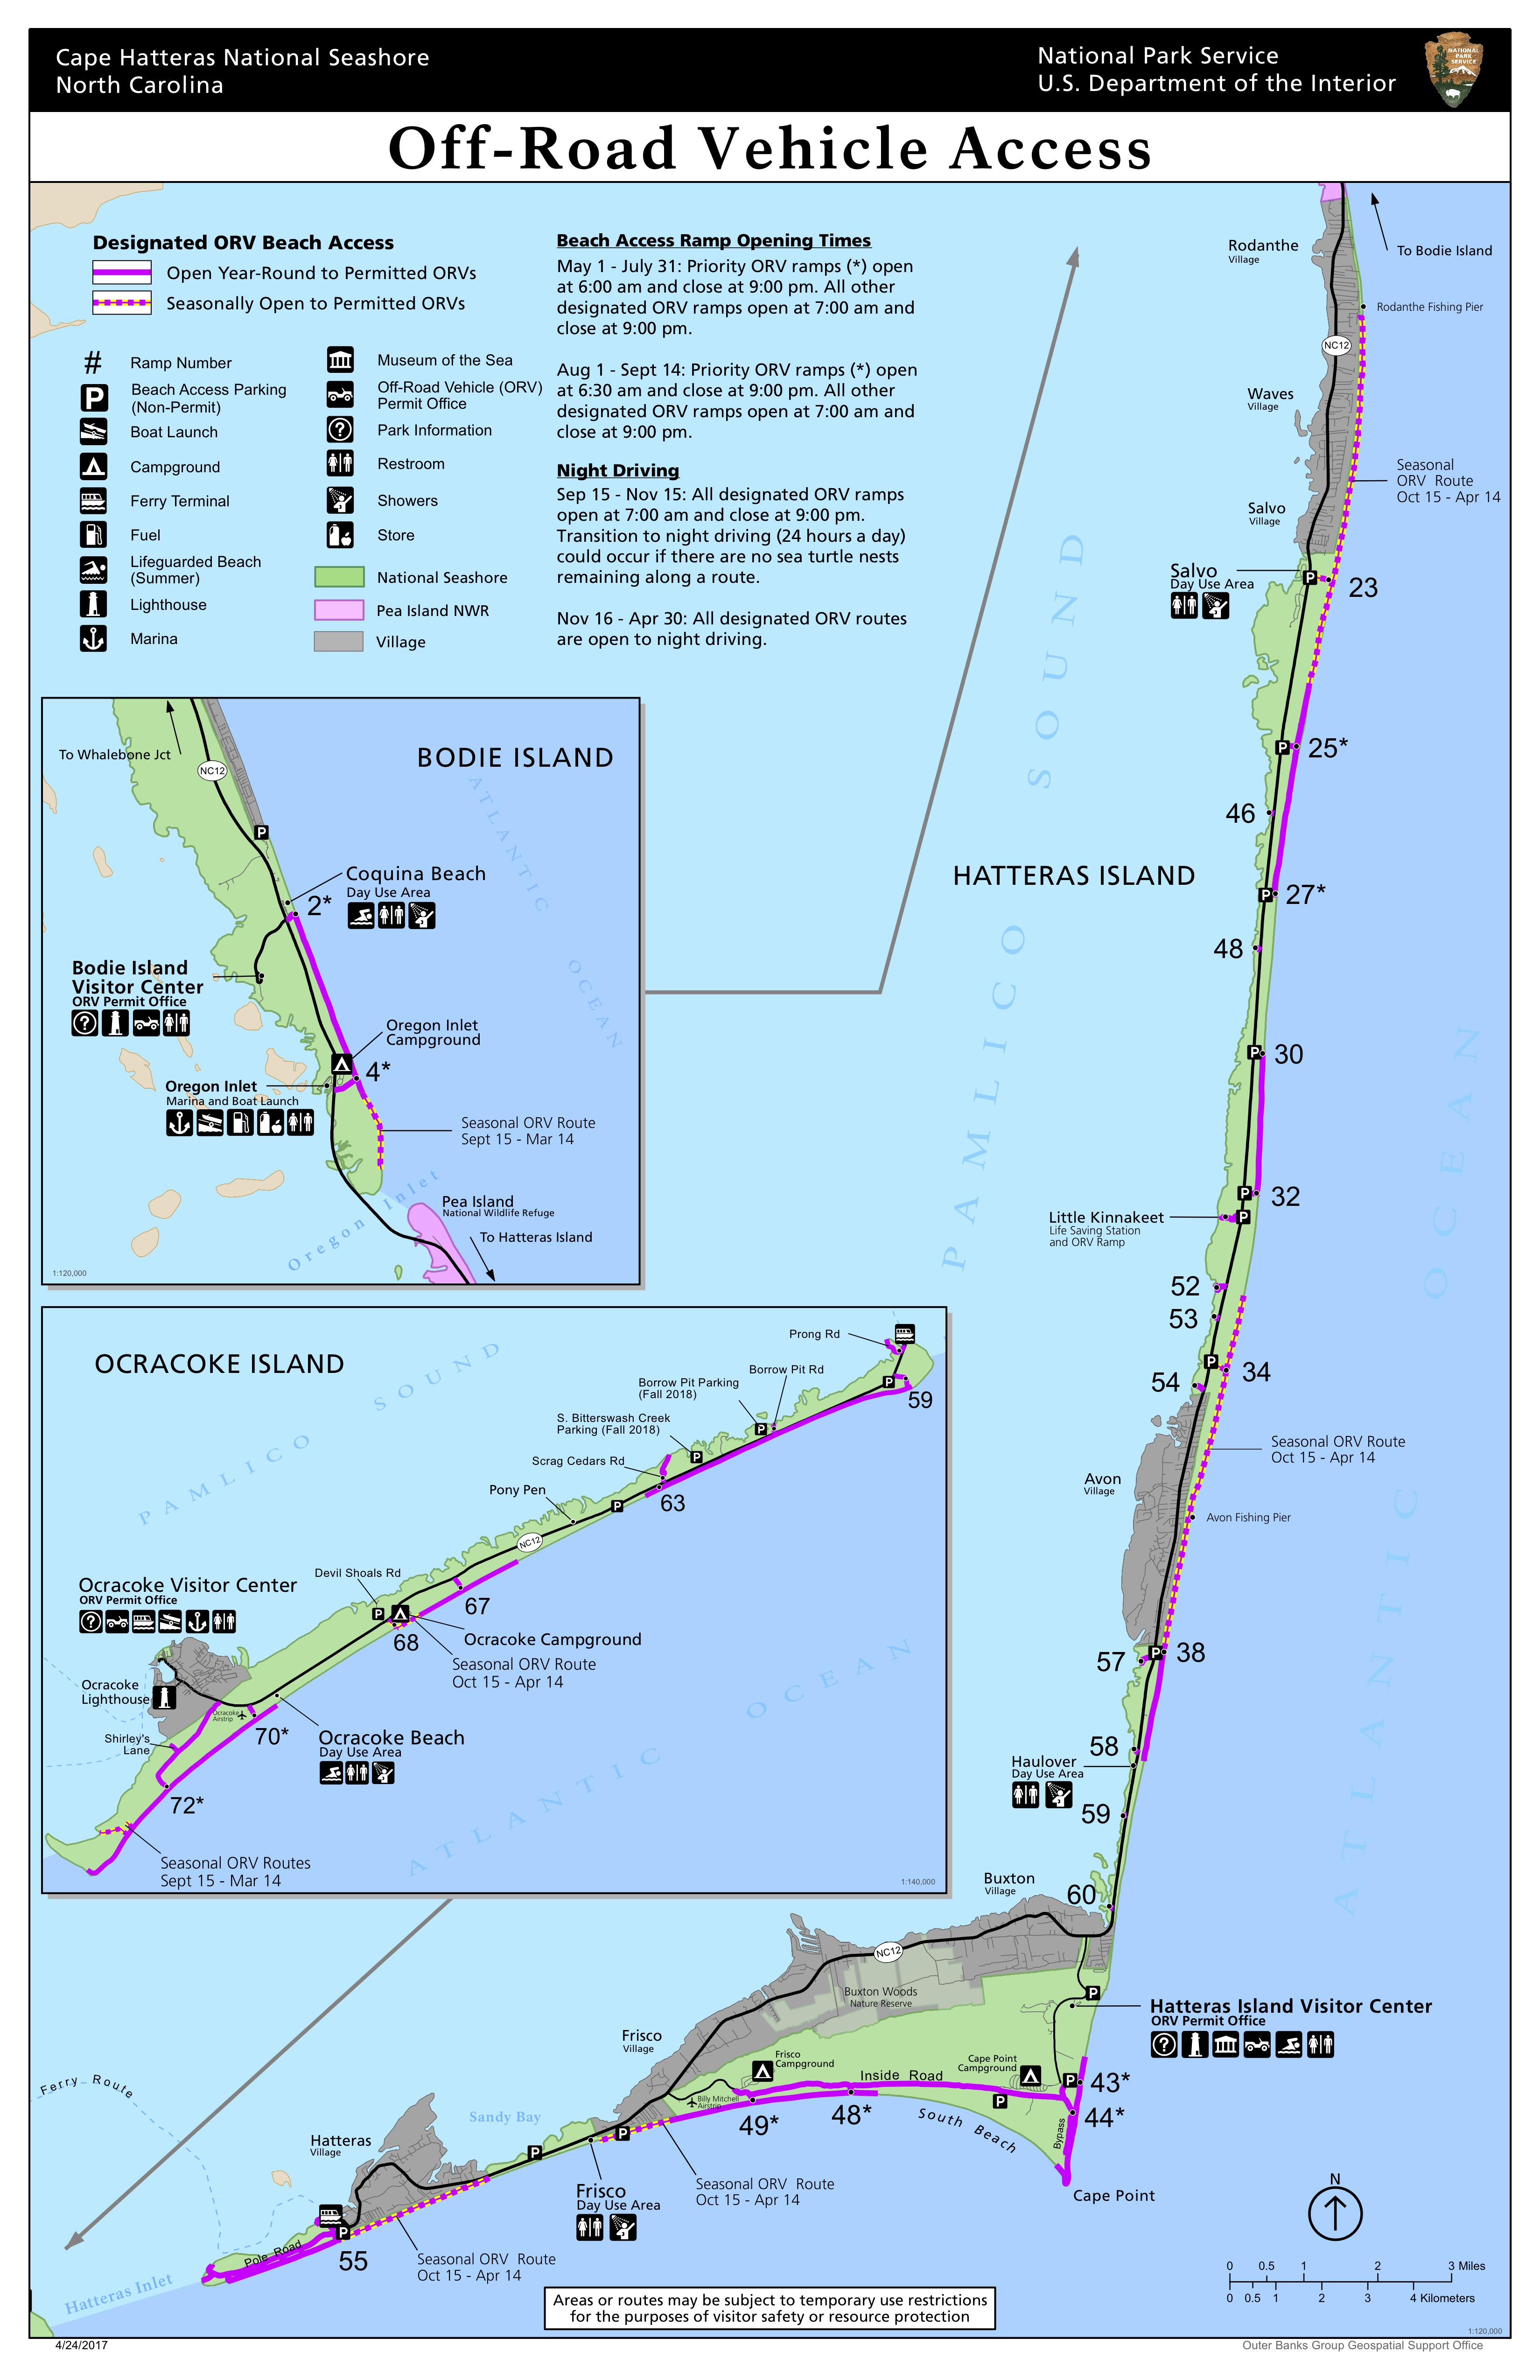 Map of Cape Hatteras National Seashore Off-Road Vehicle Access Routes